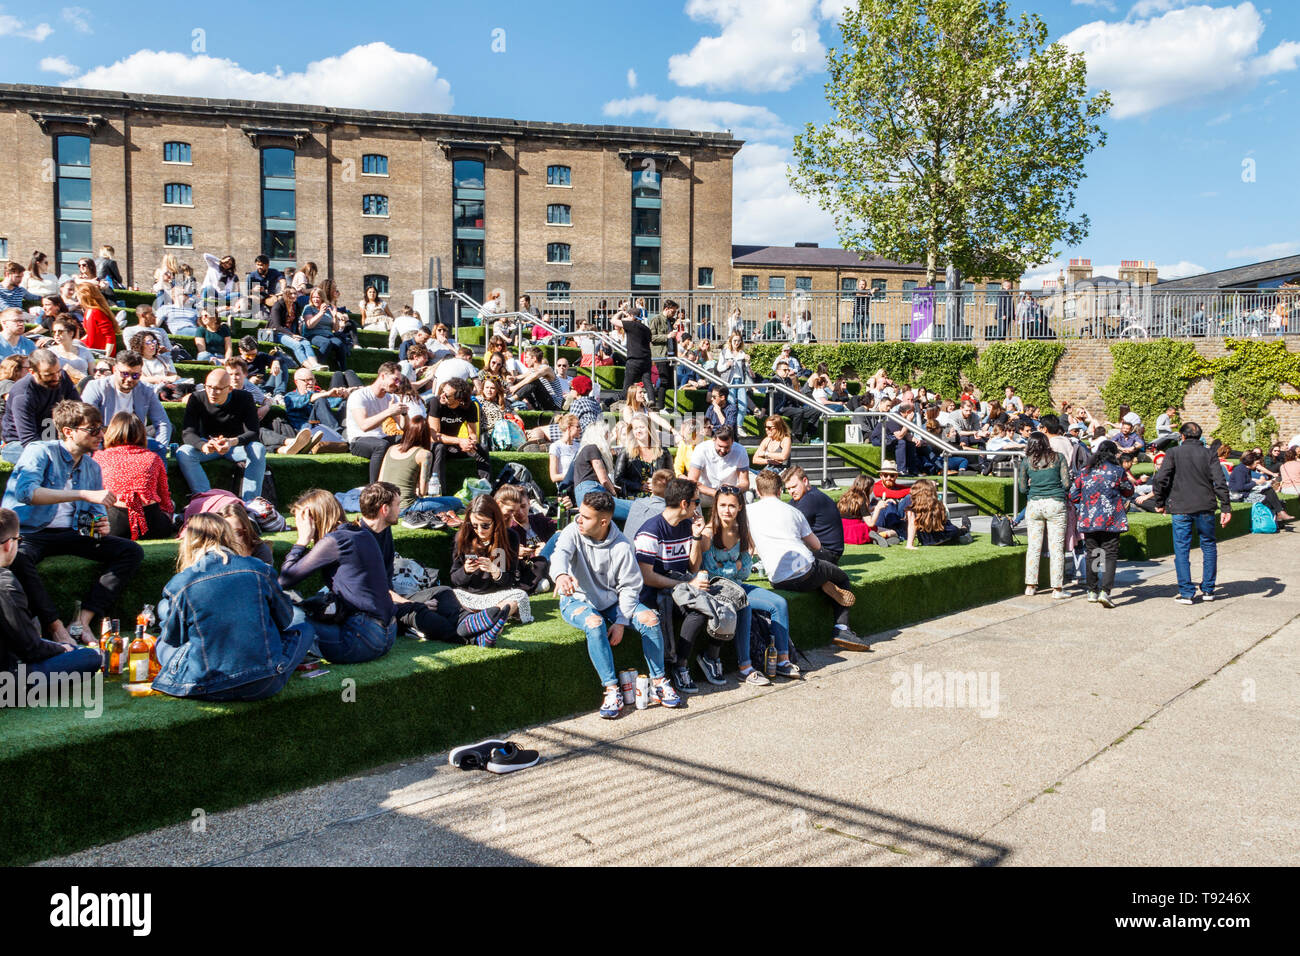 Londoners basking in spring sunshine on the steps of Granary Square by Regent's Canal, King's Cross, London, UK, 2019 - Stock Image